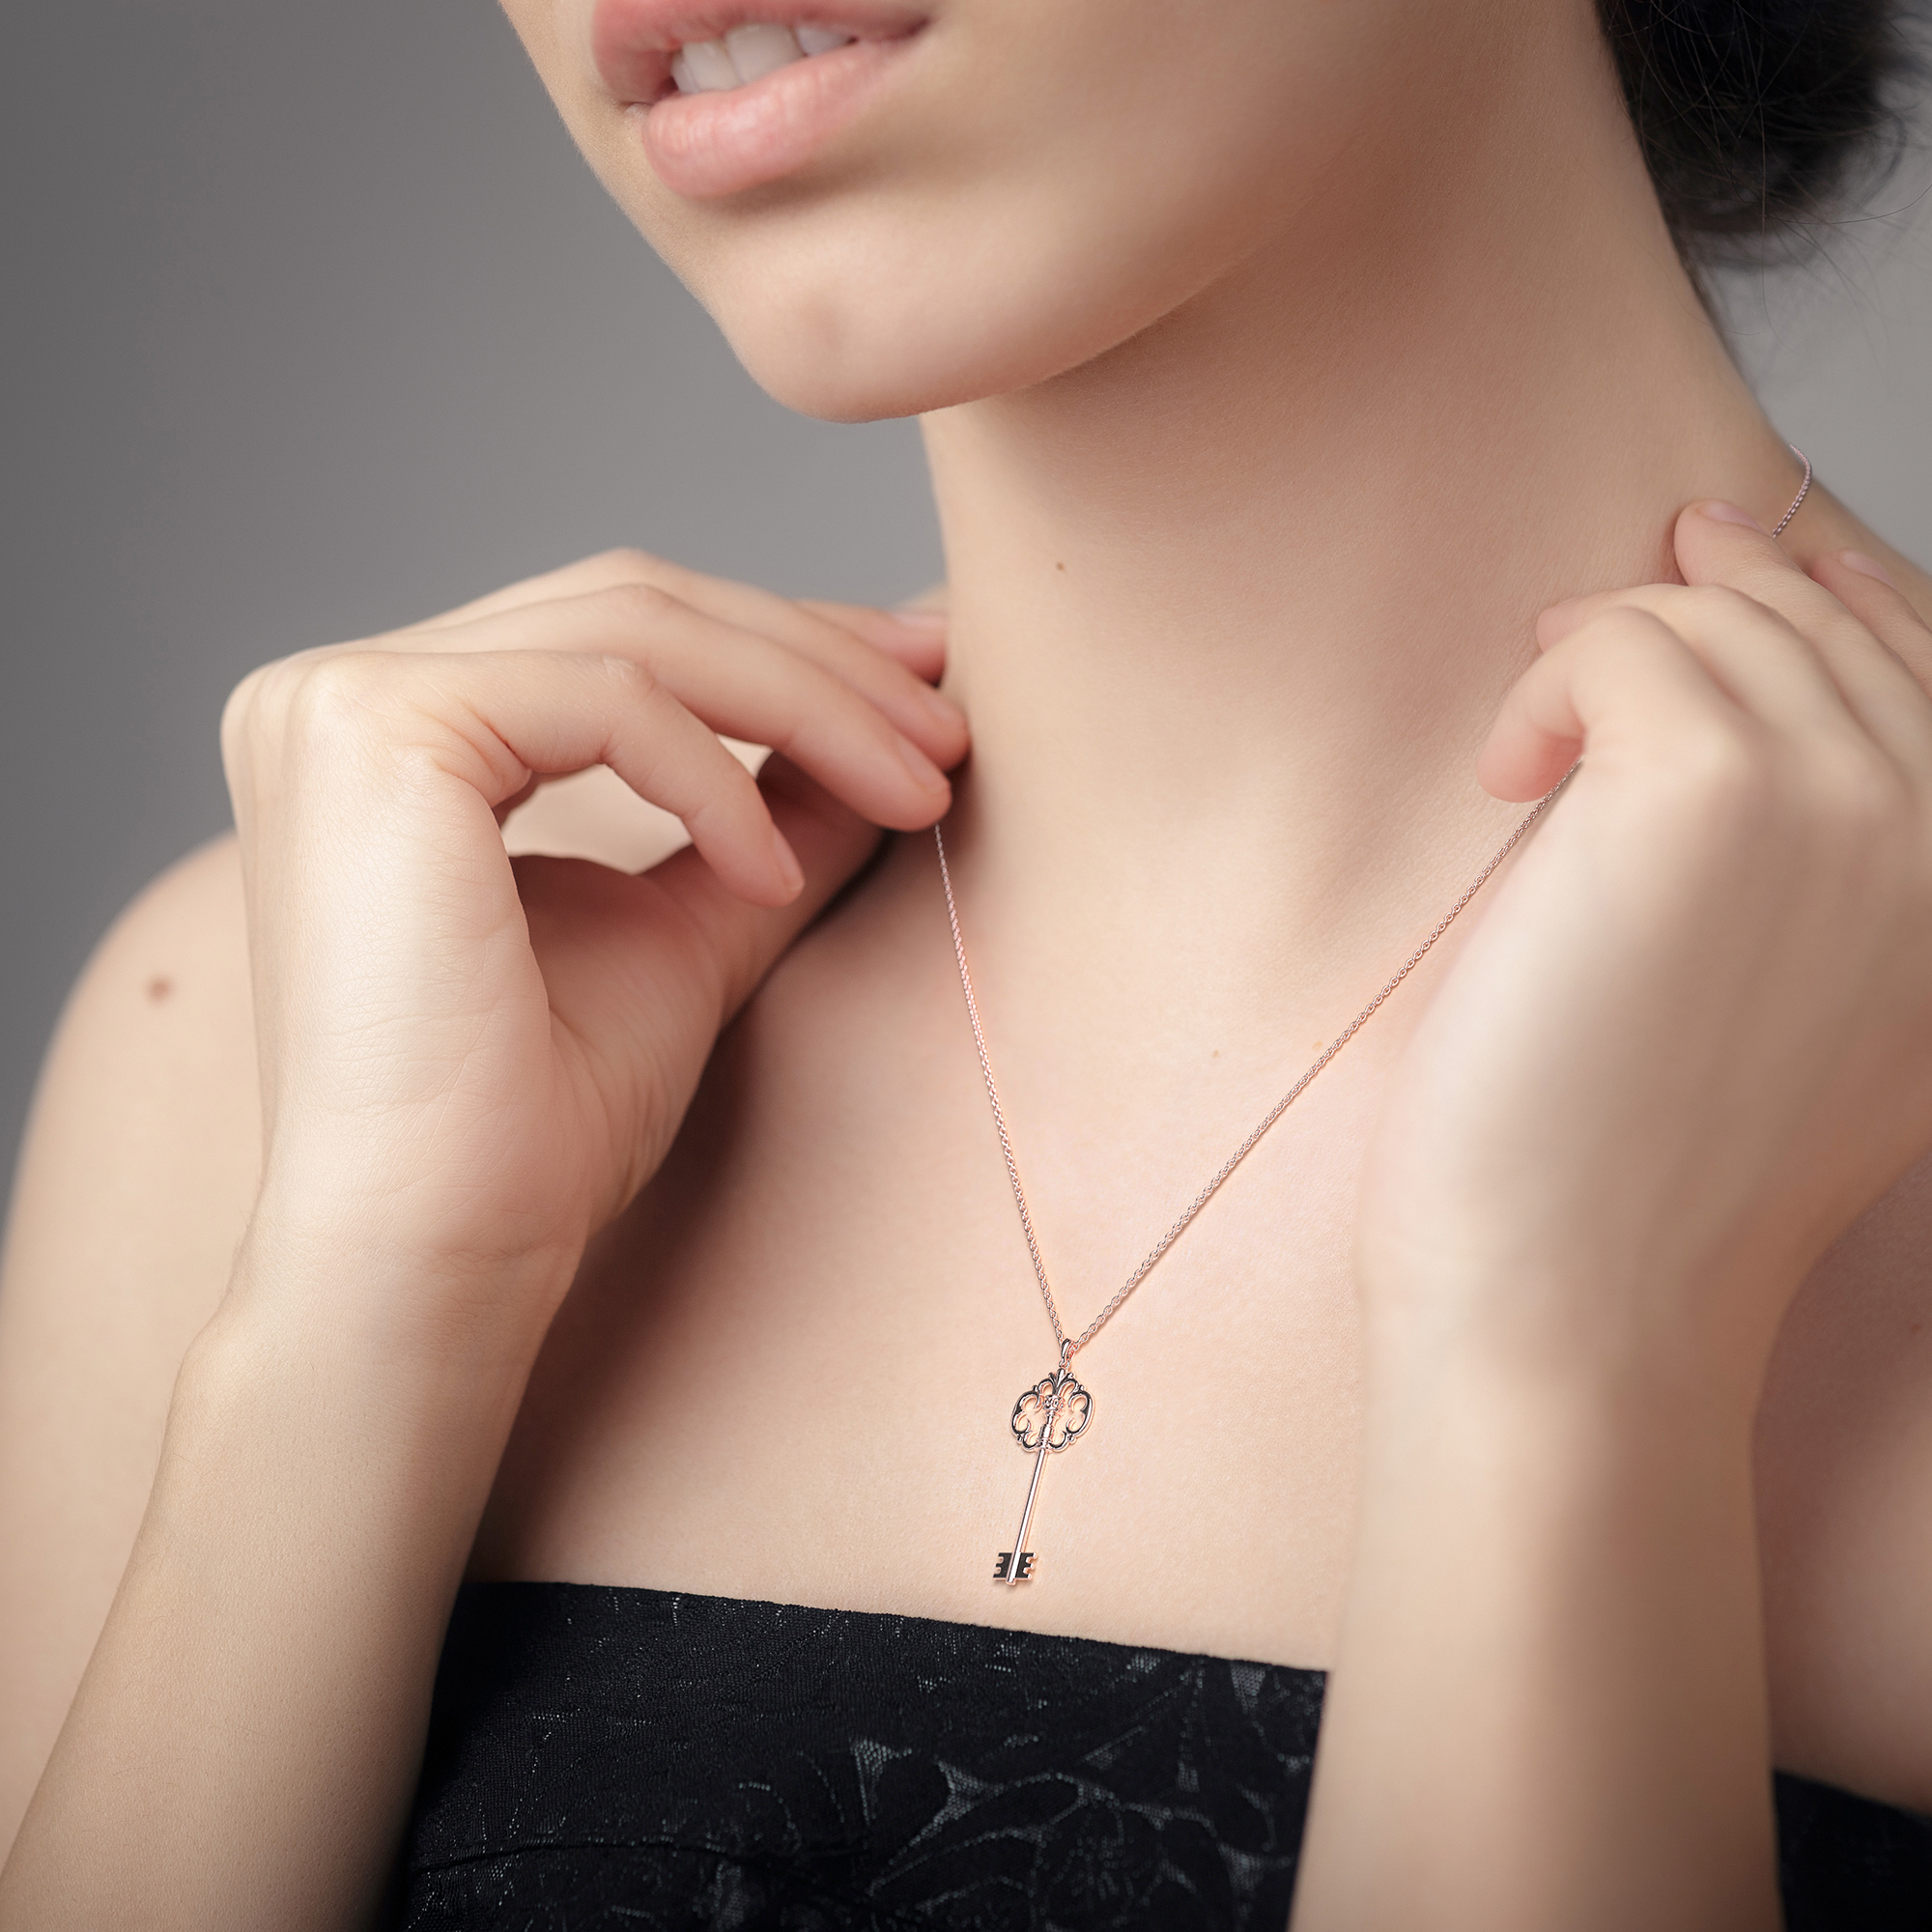 Key Edwardian Pendant Necklace Gift For Her Rose Gold Bridal Jewelry